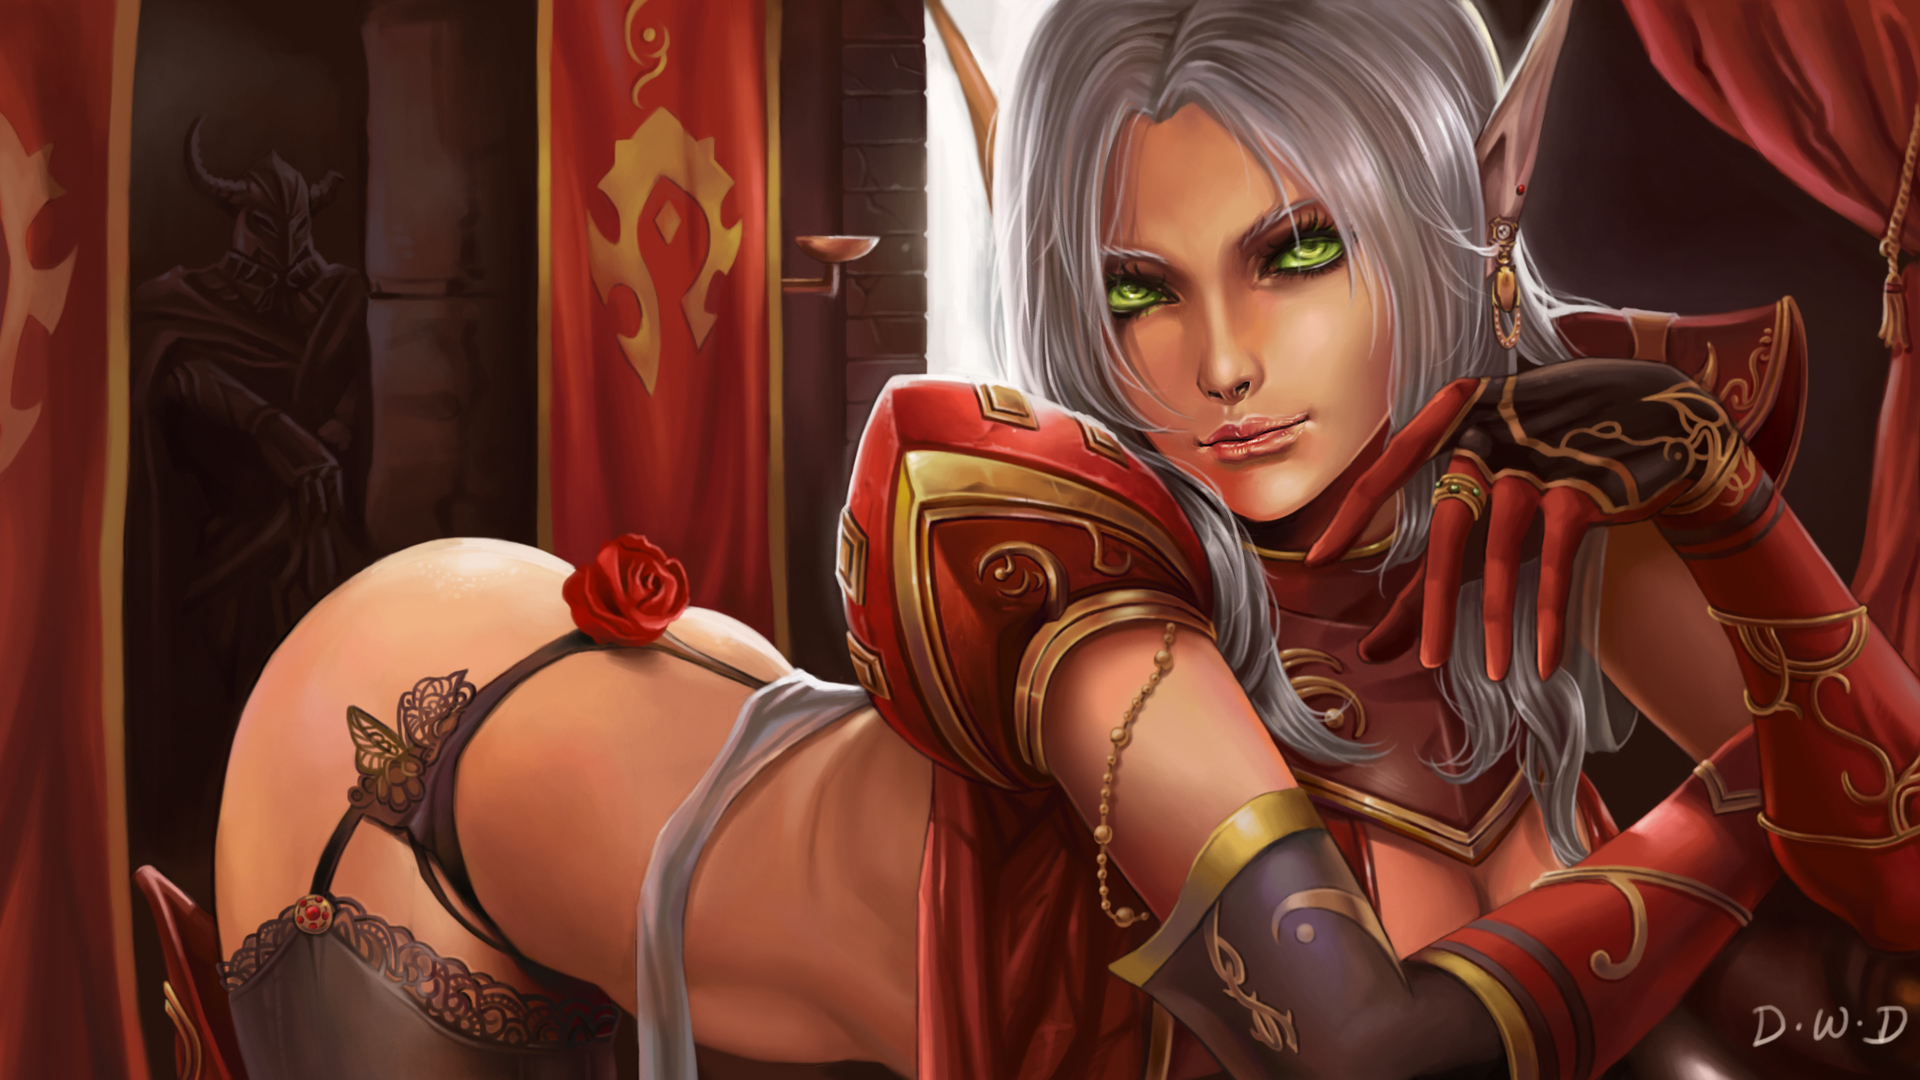 World of warcraft blood elves hentai nackt picture